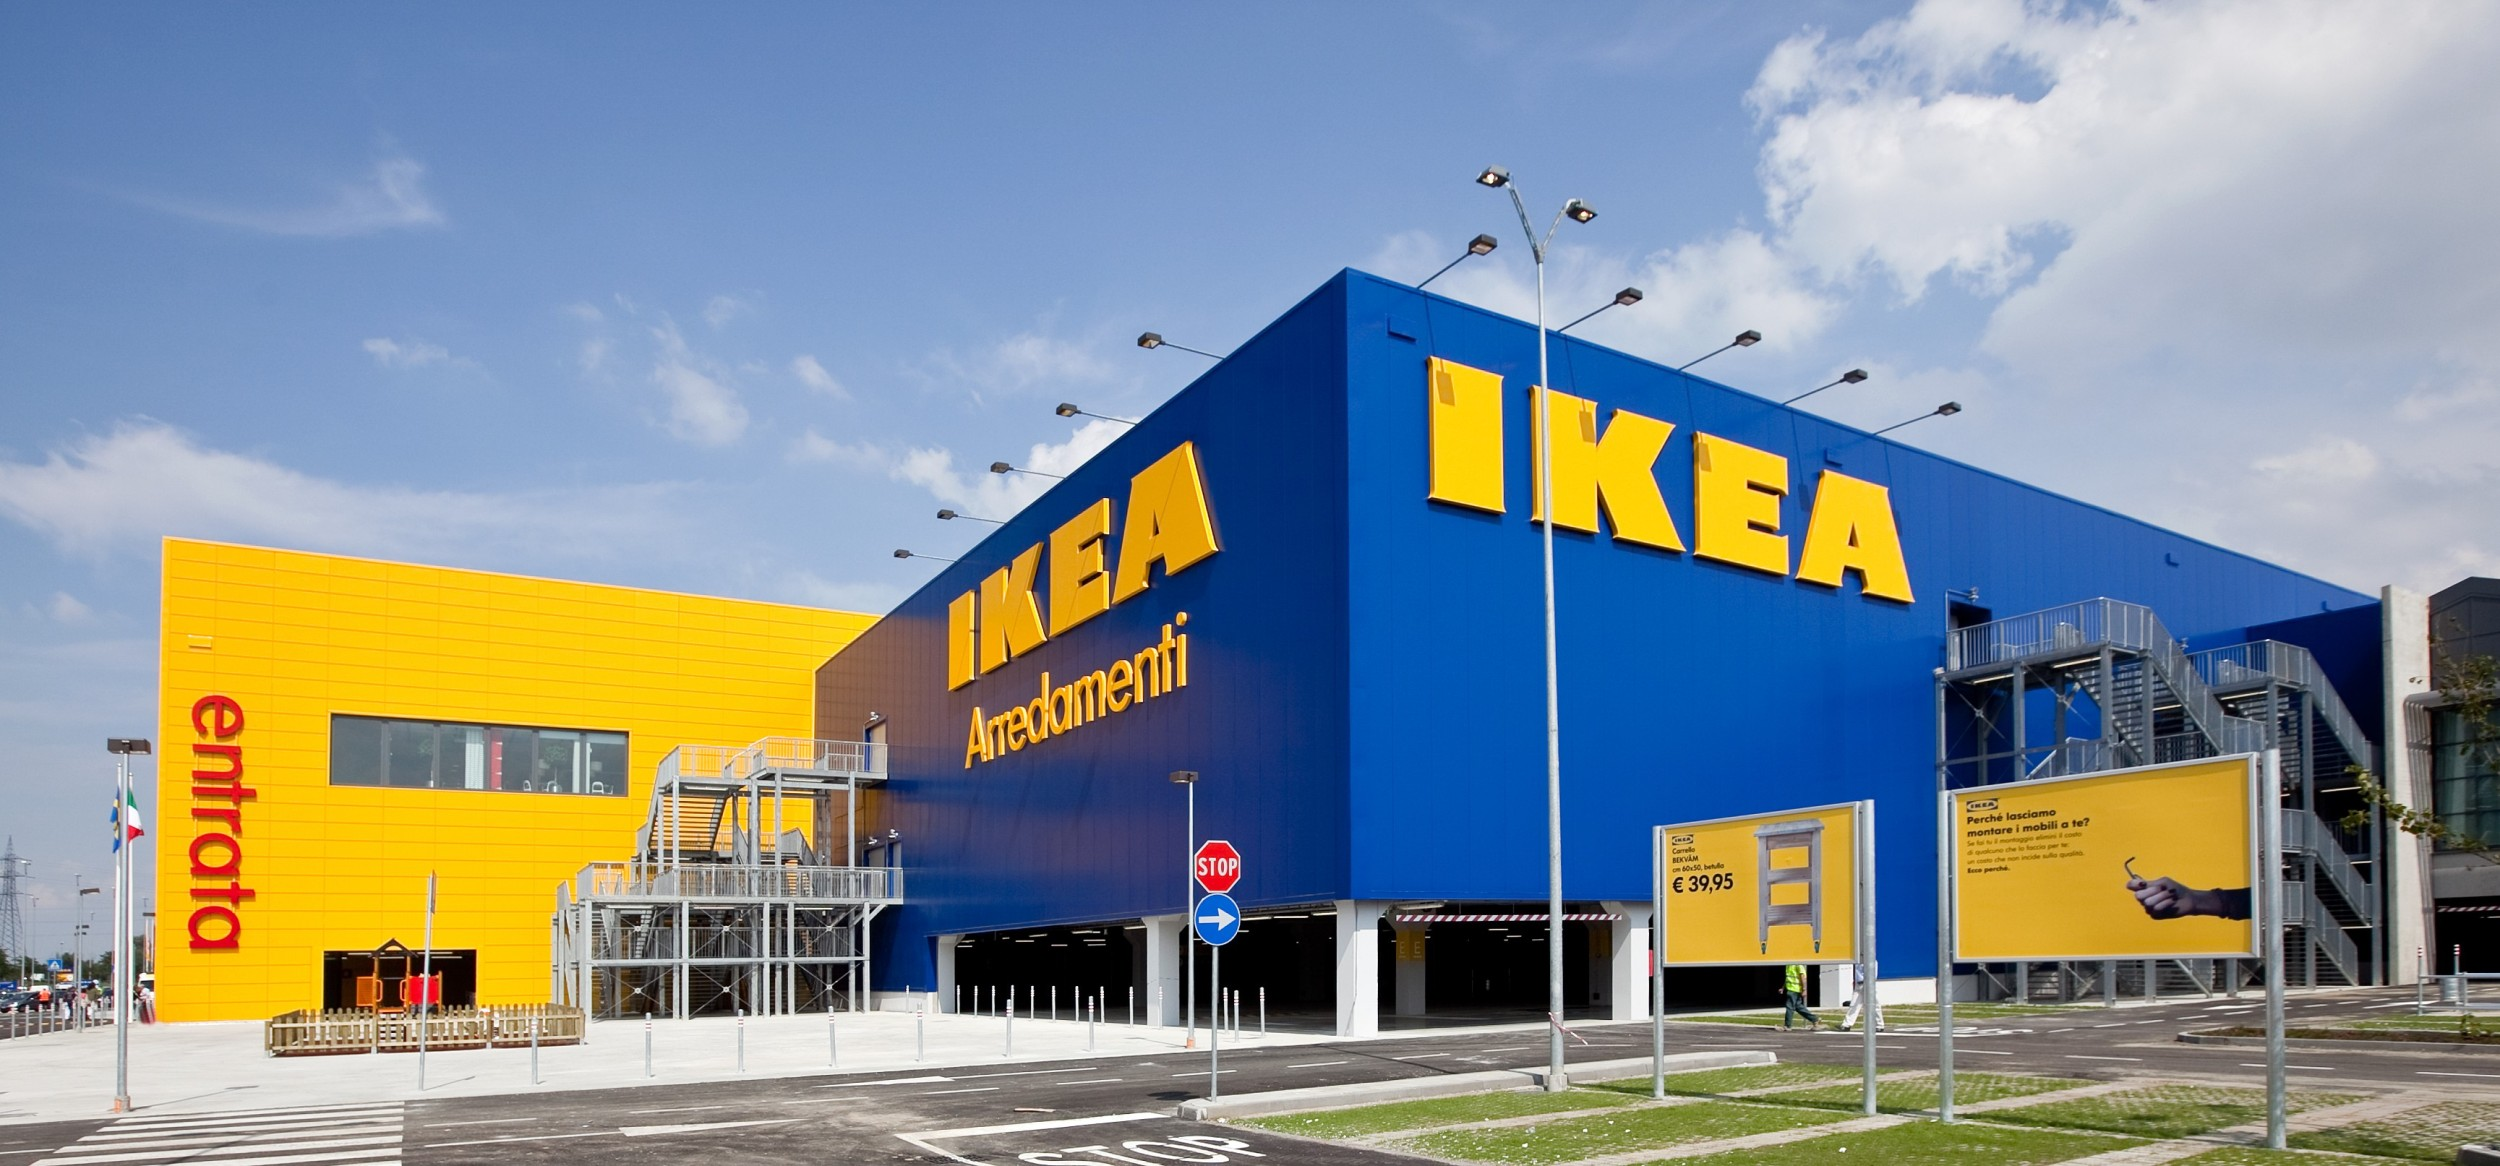 Unit 16 Operations and Project Management Assignment IKEA - Assignment Help in UK